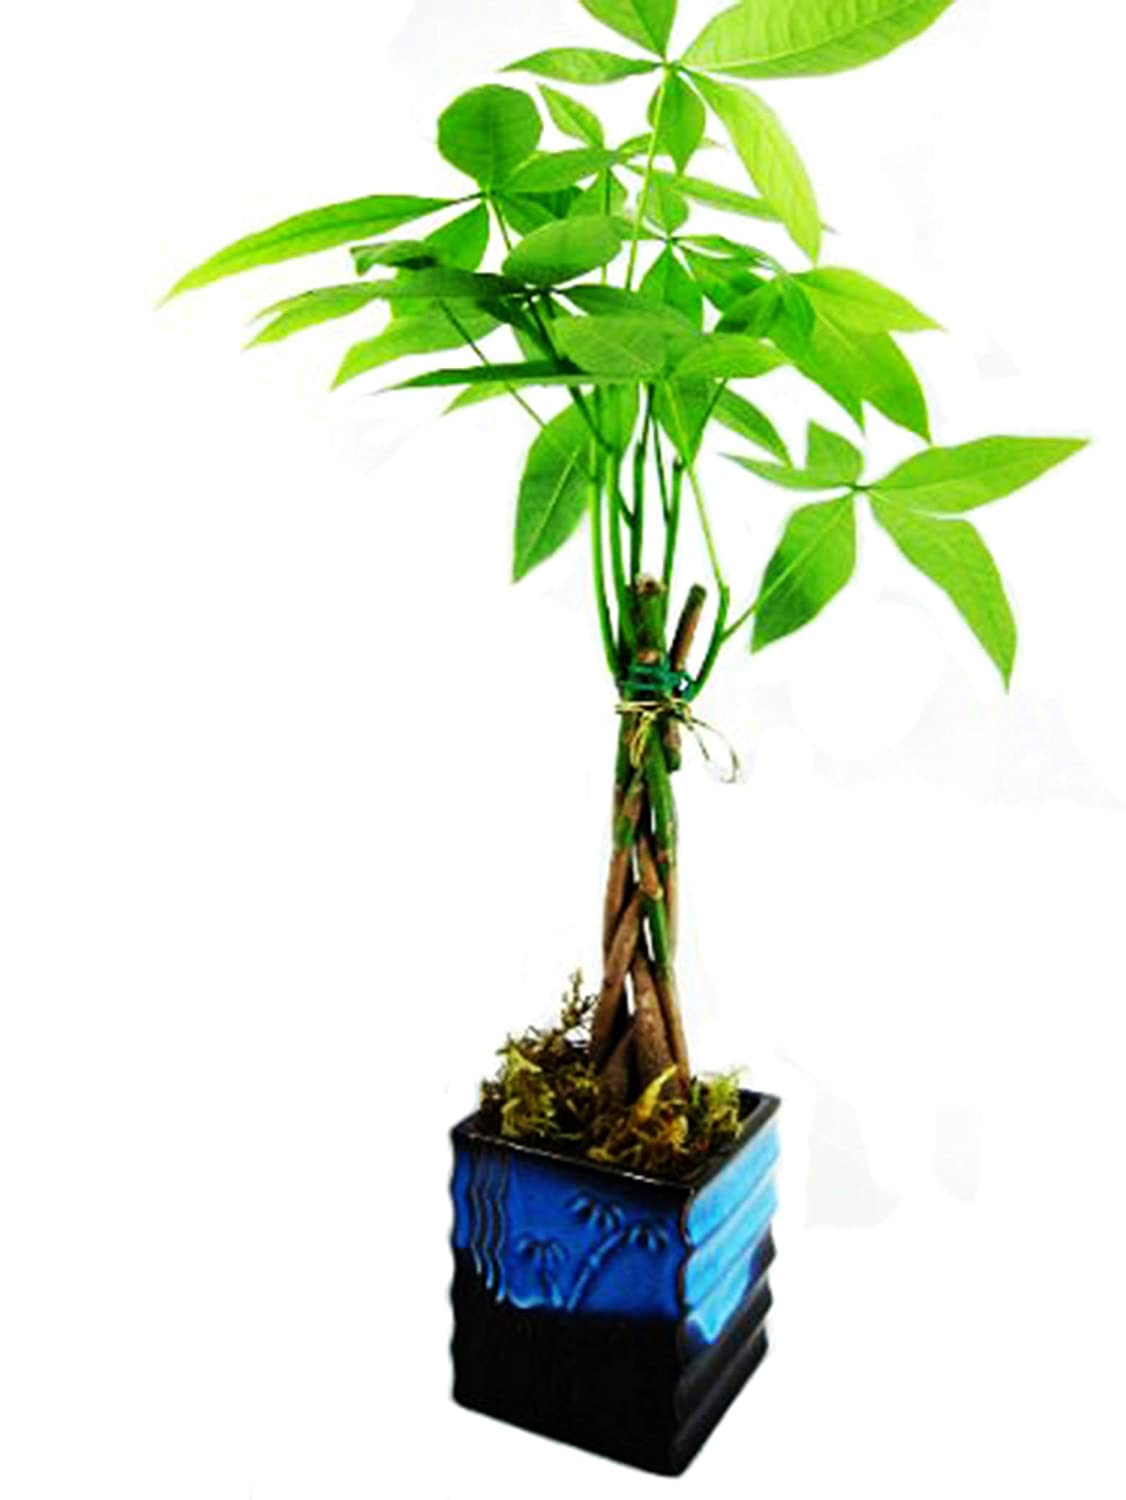 9GreenBox - 5 Money Tree Plants ided Into 1 Tree - 4